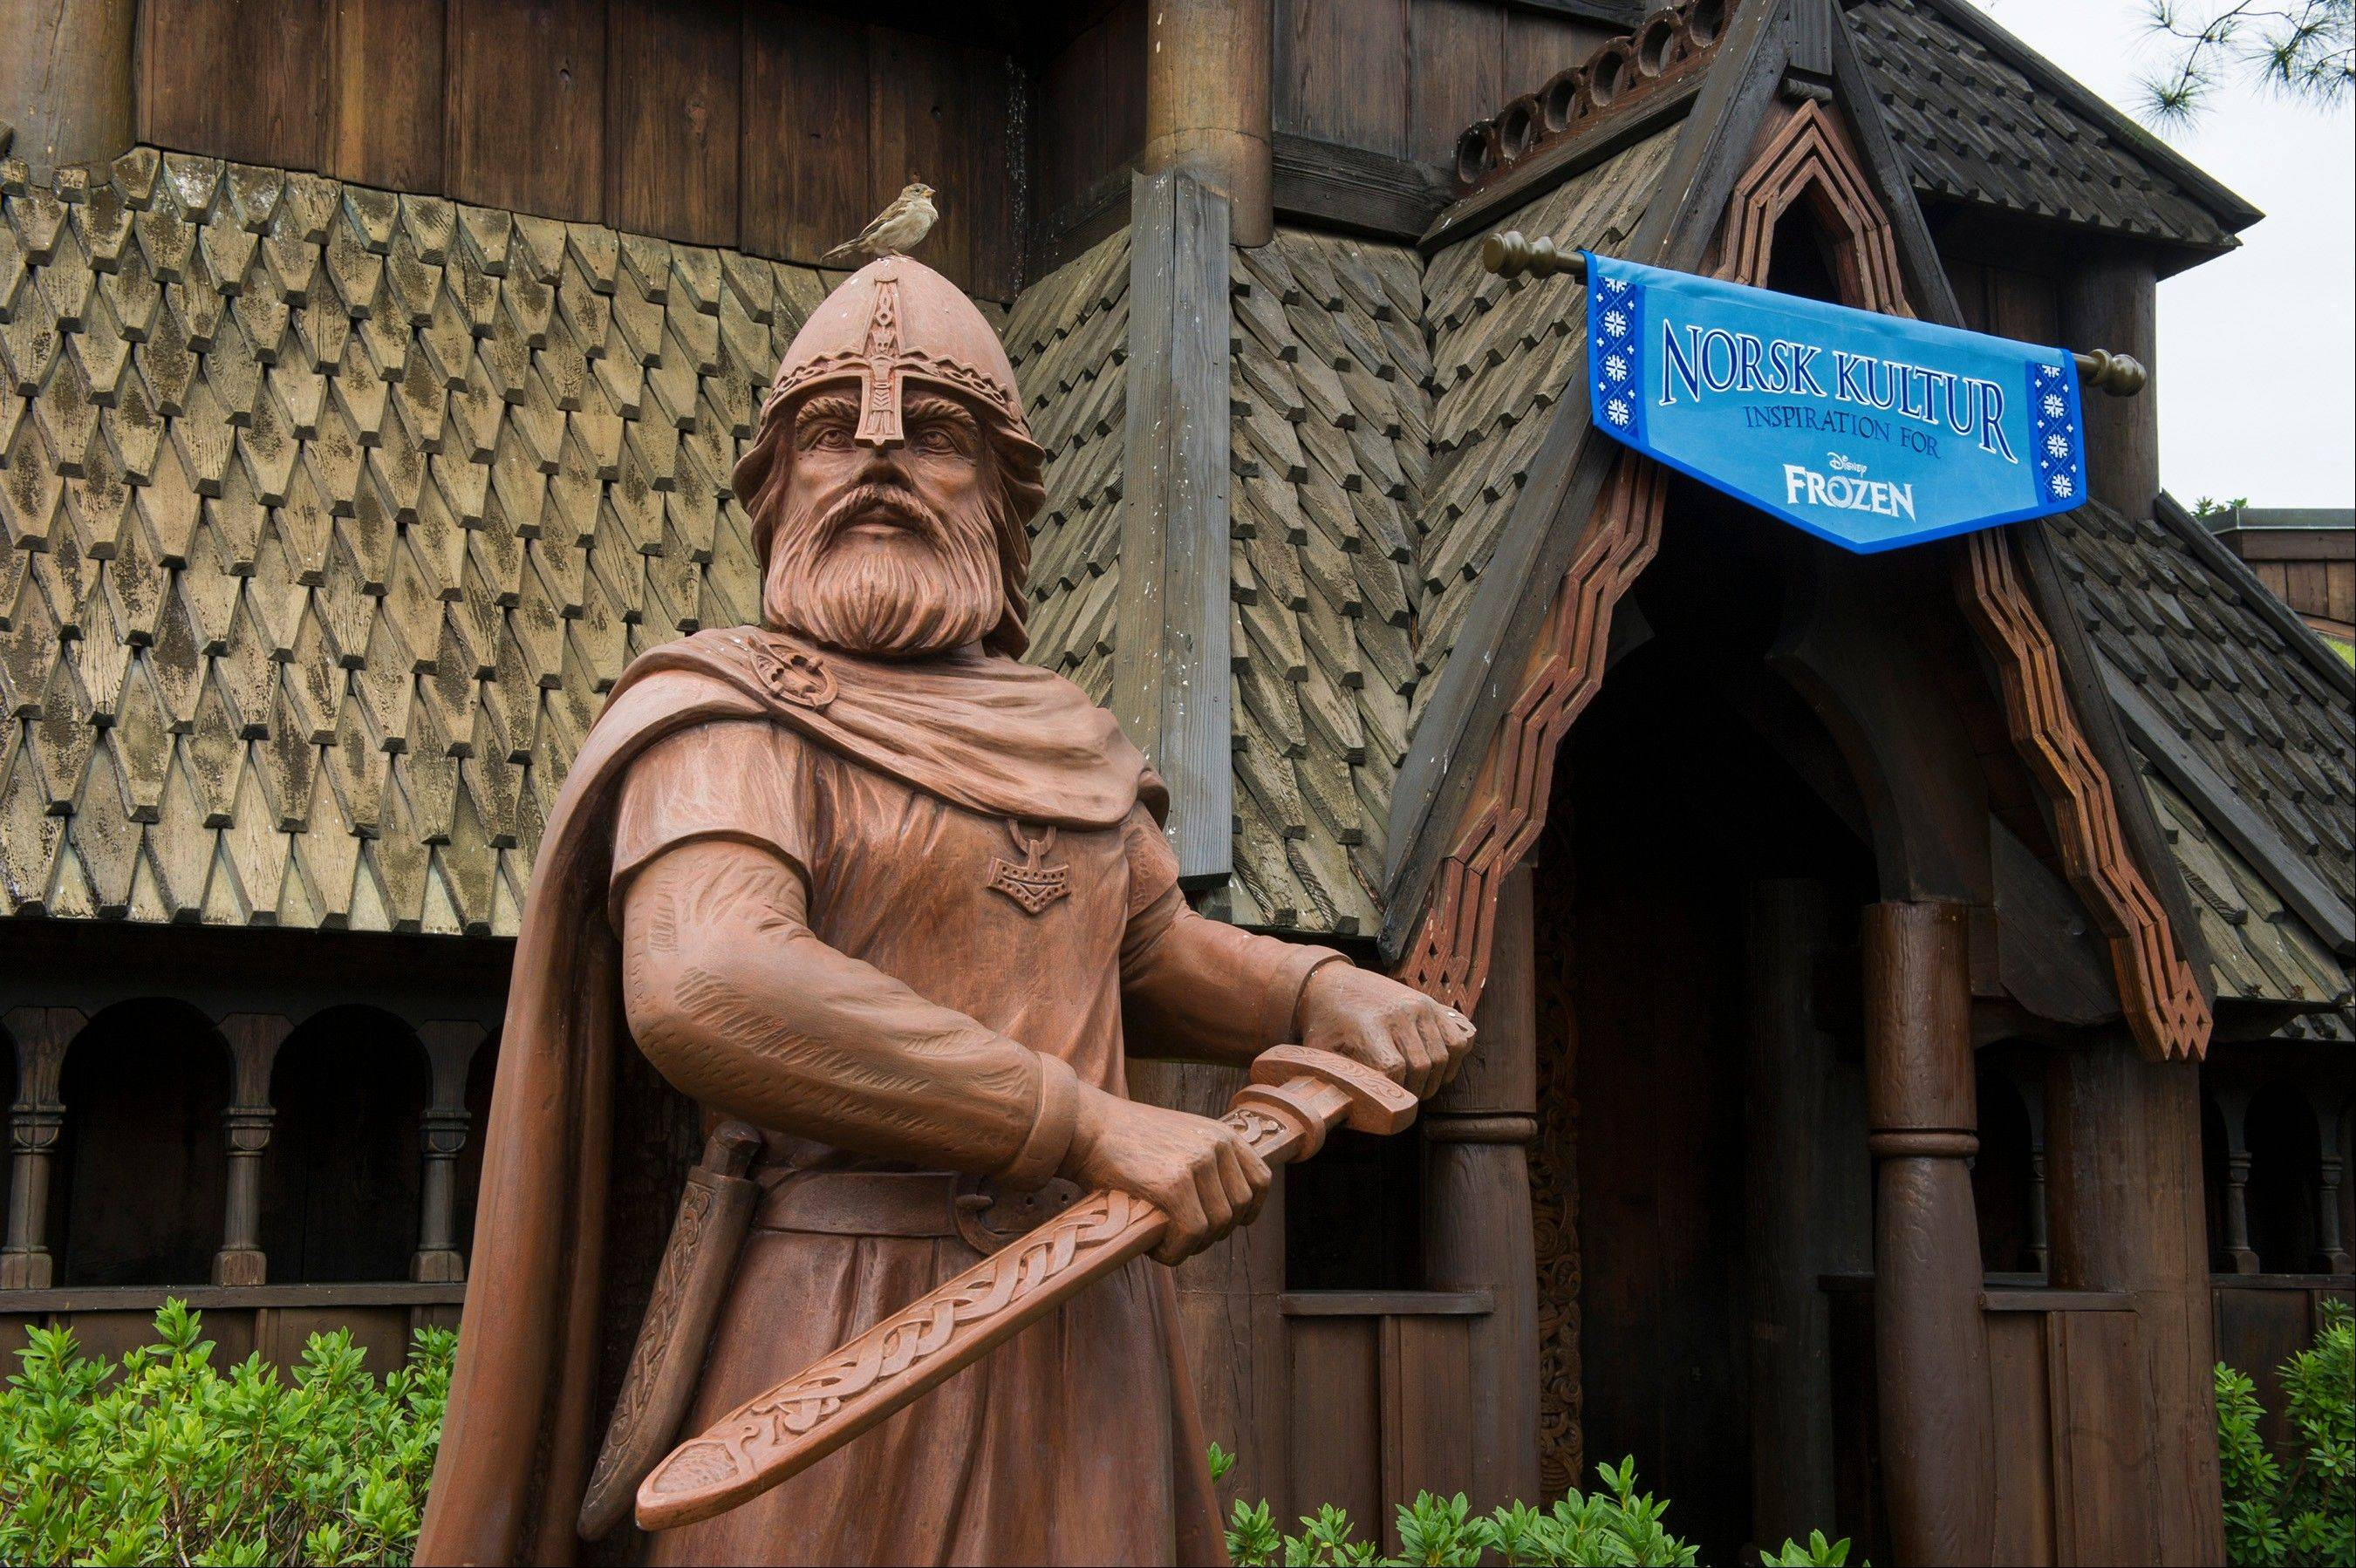 "This Nov. 25, 2013 photo shows the exterior of a new gallery, Norsk Kultur in the Norway pavilion at Epcot at Walt Disney World Resort in Lake Buena Vista, Fla. The new exhibit explores how the culture and beauty of Norway inspired the filmmakers during the creation of Disney's ""Frozen."" Norsk Kultur, meaning �Norweigan Culture, � features items such as an authentic handmade bunad, the traditional costume of Norway; a hardanger fiddle and other handmade instruments; hand-carved artisan furniture; examples of rosemaling (traditional Norse decorative painting)."